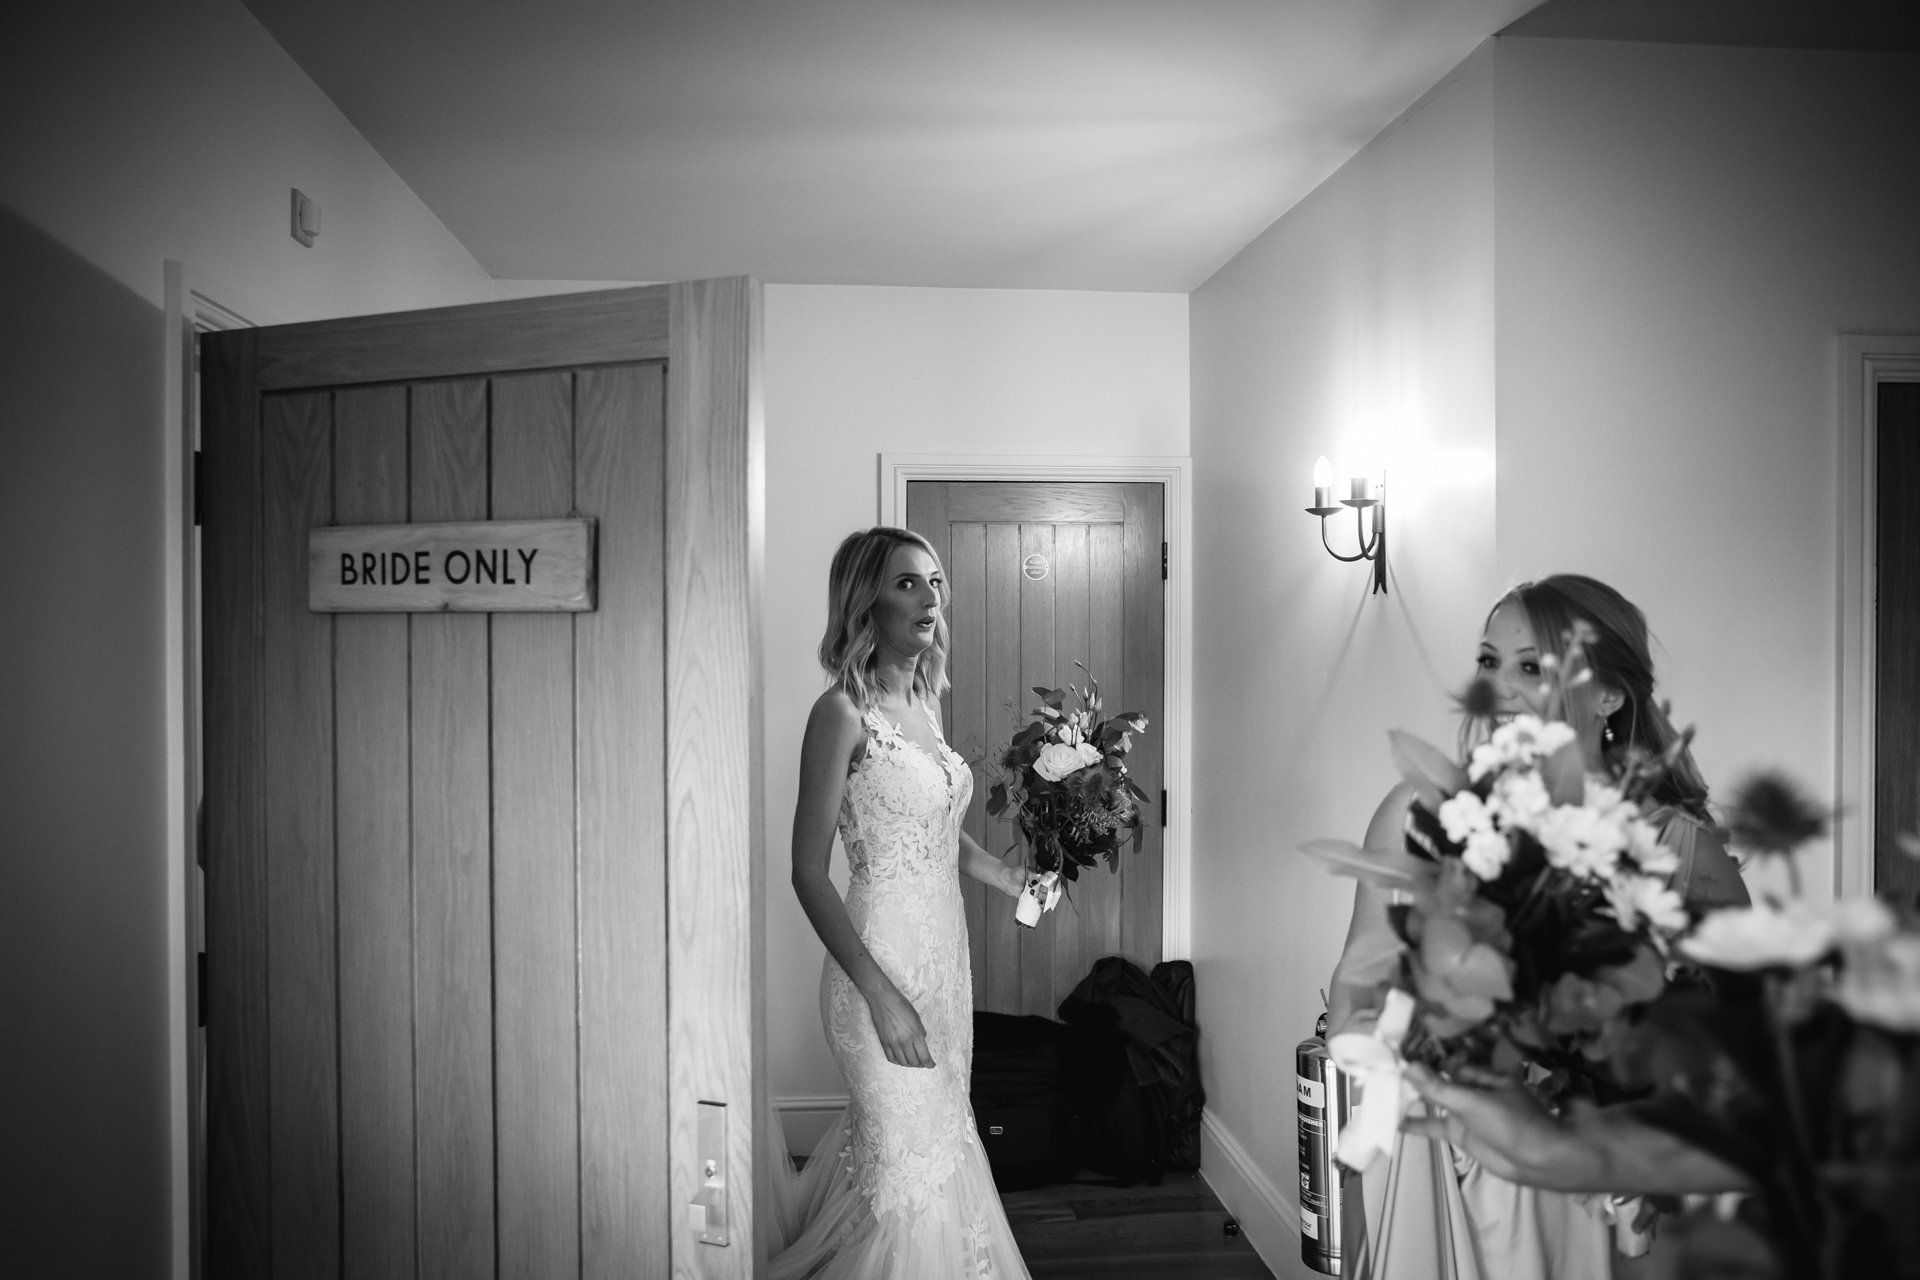 Bride pulls face as she exits Bride Only room before wedding